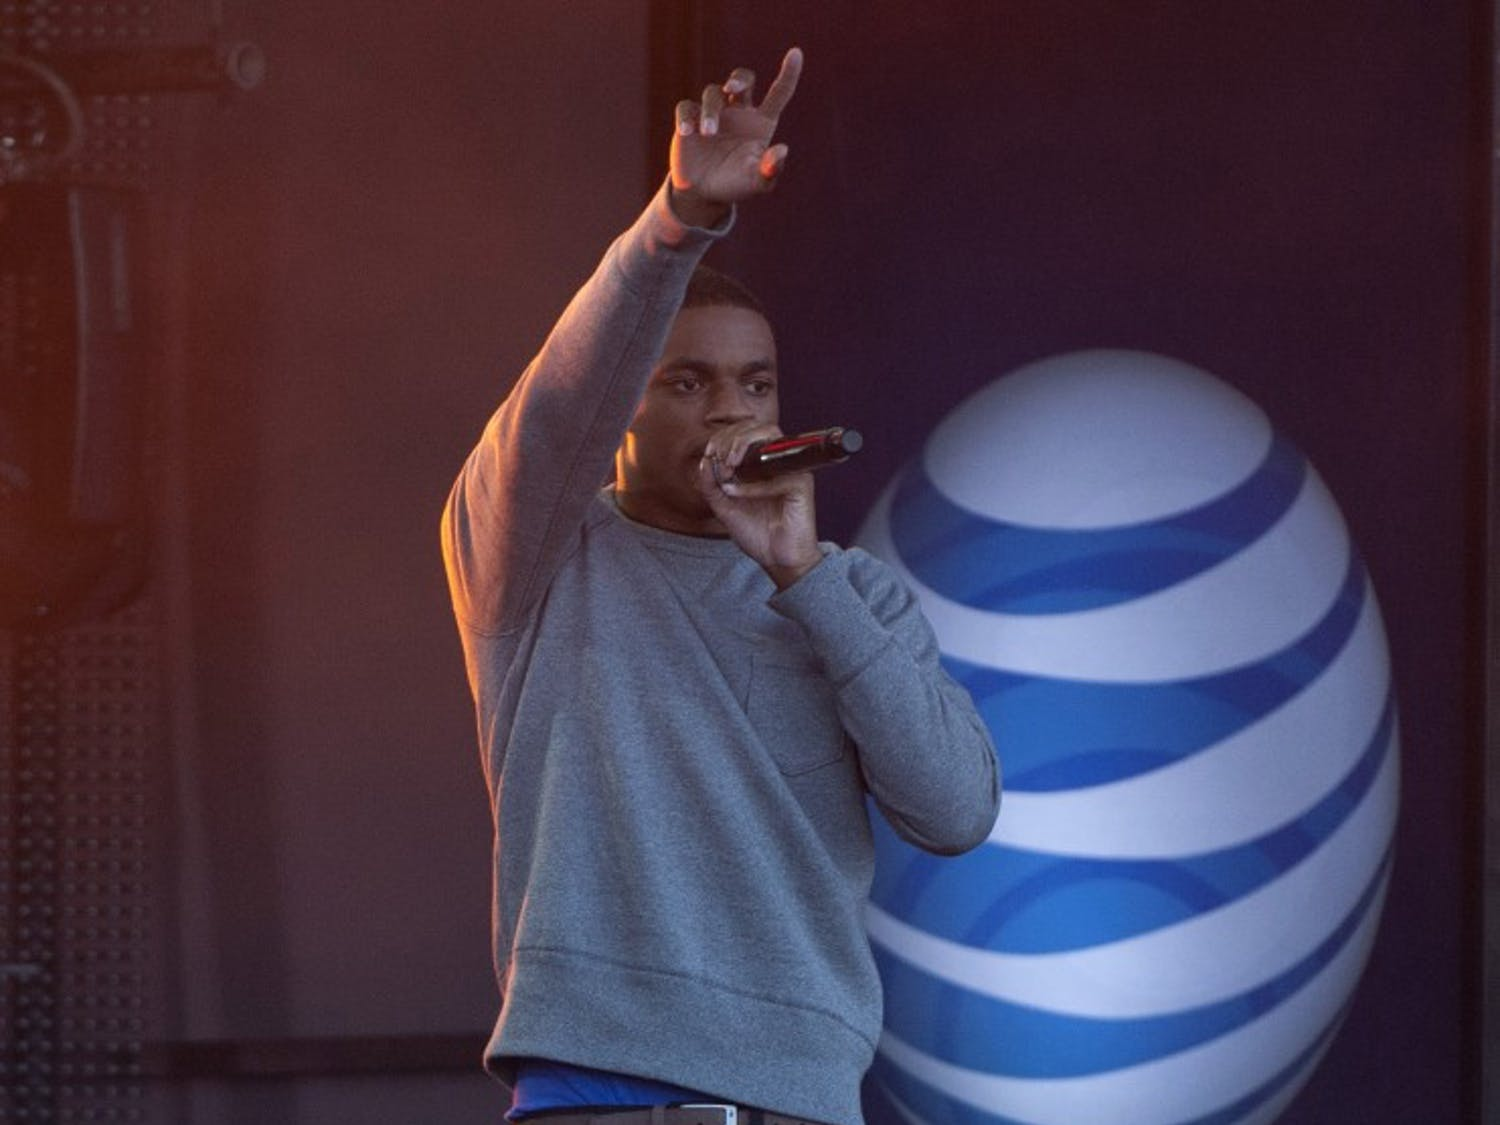 Rapper and Hip Hop artist Vince Staples sings a duet with Common's Lonnie Rashid Lynn, Jr., at Jimmy Kimmel Live! on July 23, 2014 in Hollywood, Calif. (David Bro/Zuma Press/TNS)